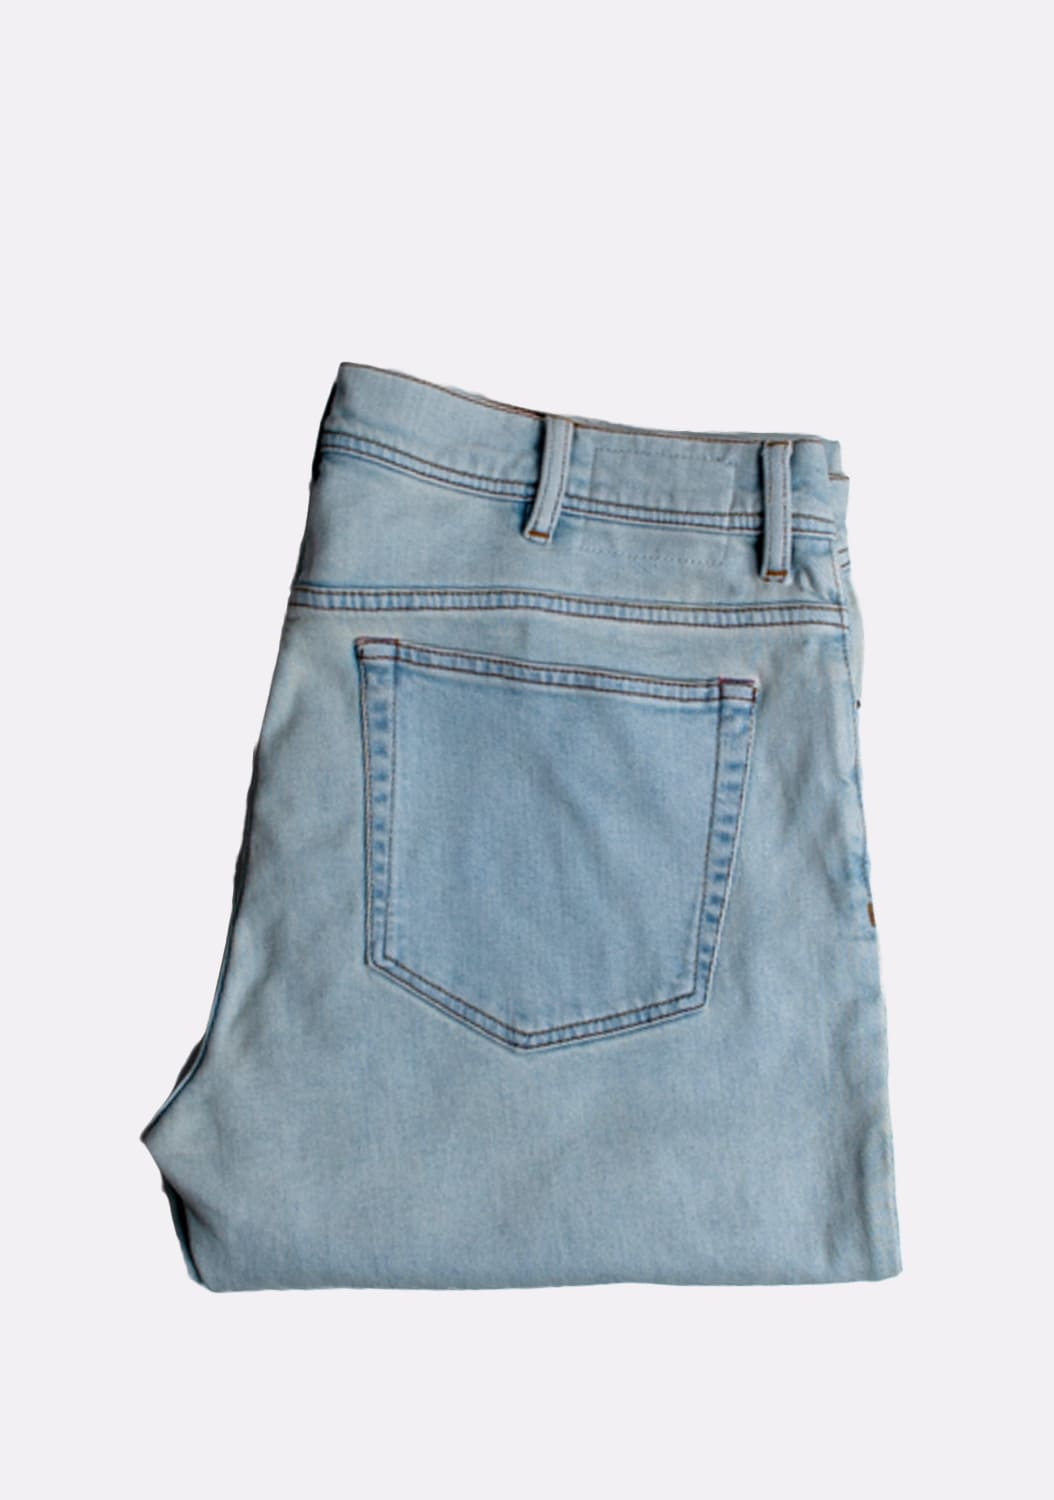 Acne-Studios-Blå-Konst-North-Lt-Blue-34-32-urock-dzinsai (1)